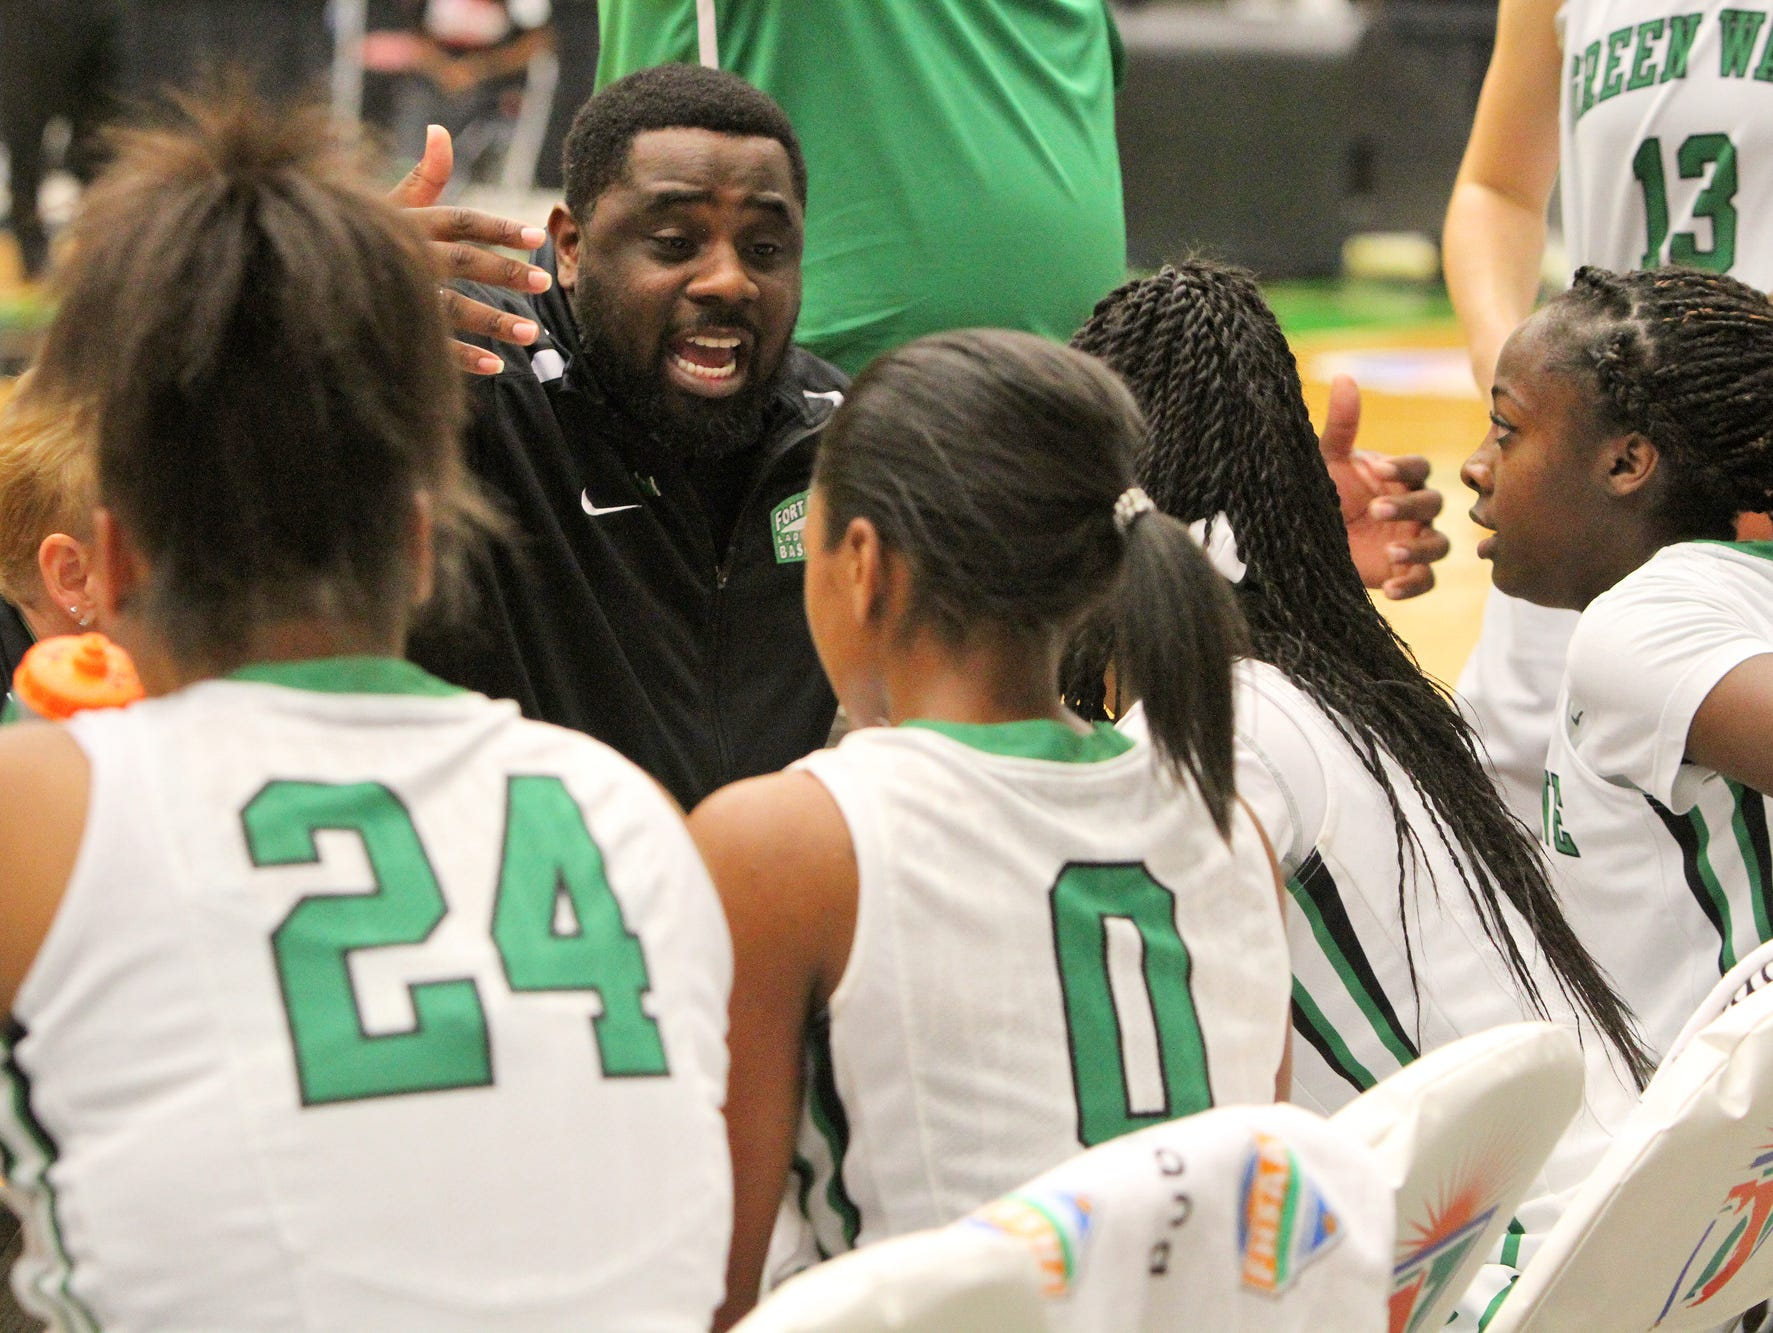 Fort Myers head coach Chad Terrell gives a pep talk to his team during a time out against Northeast during the FHSAA Girls 6A basketball finals Saturday February 20, 2016 in Lakeland, Florida. Fort Myers won the title 60-45. Photos by Cindy Skop 2016